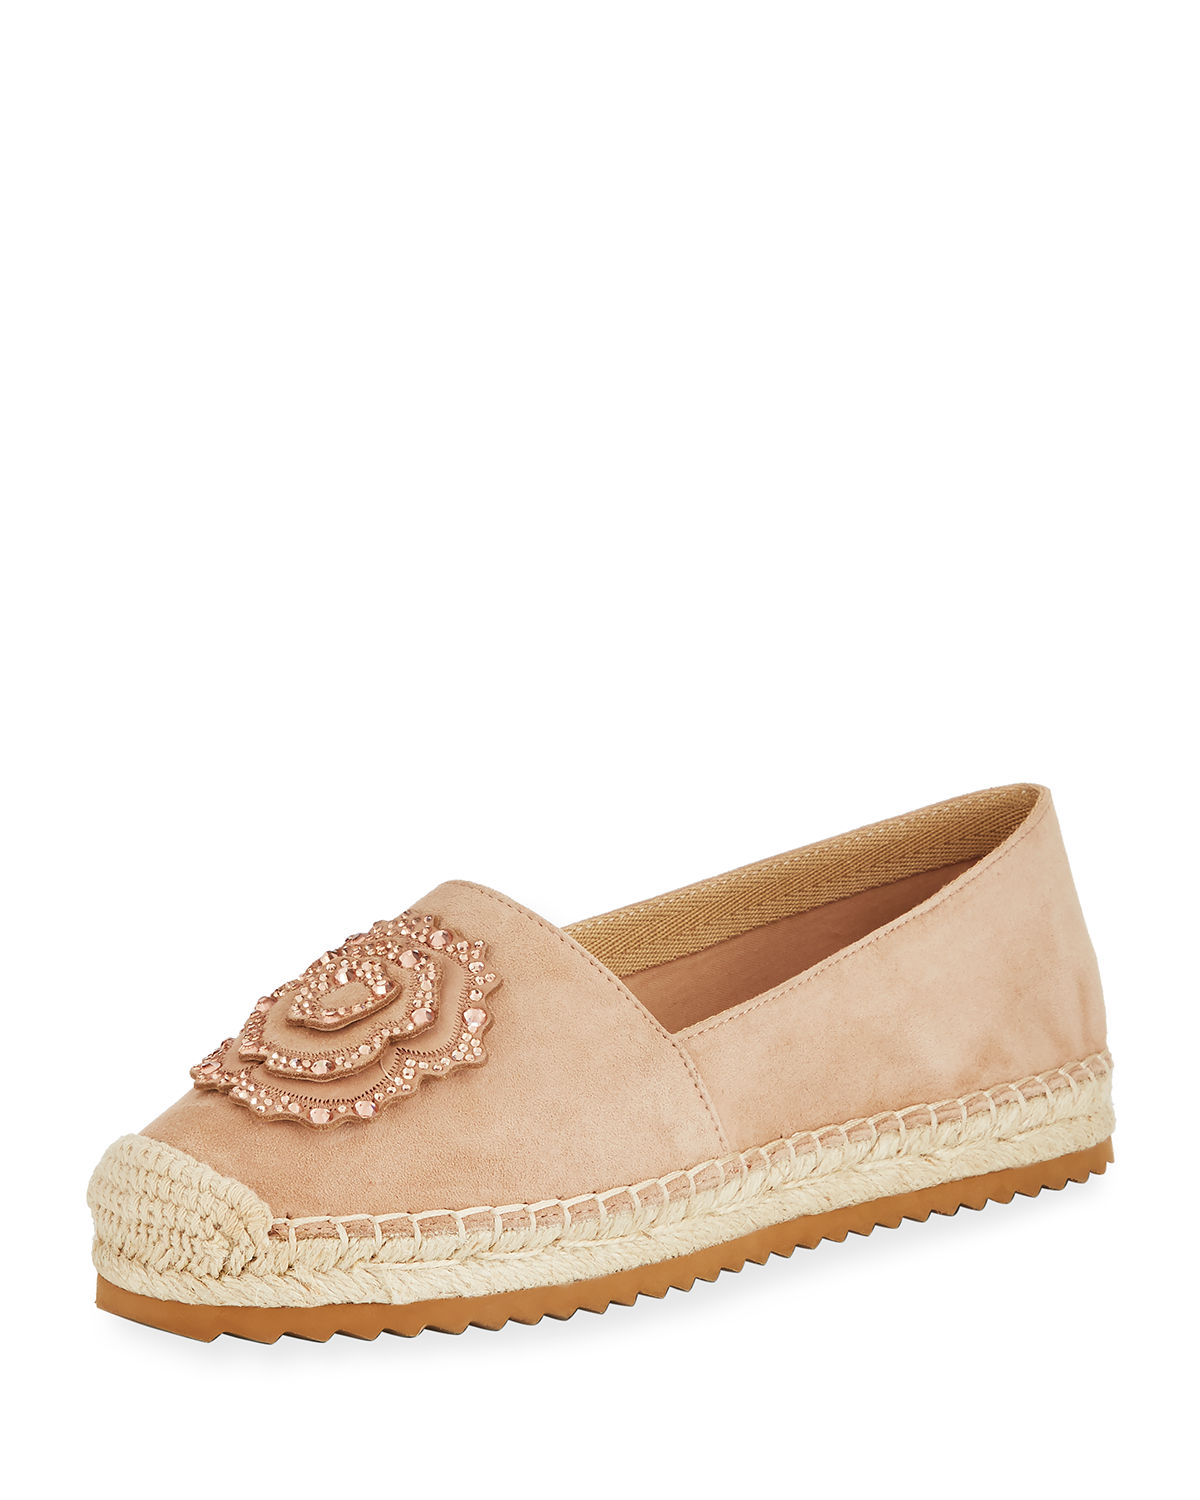 Abby Suede Espadrille Slip On Flat with Flower